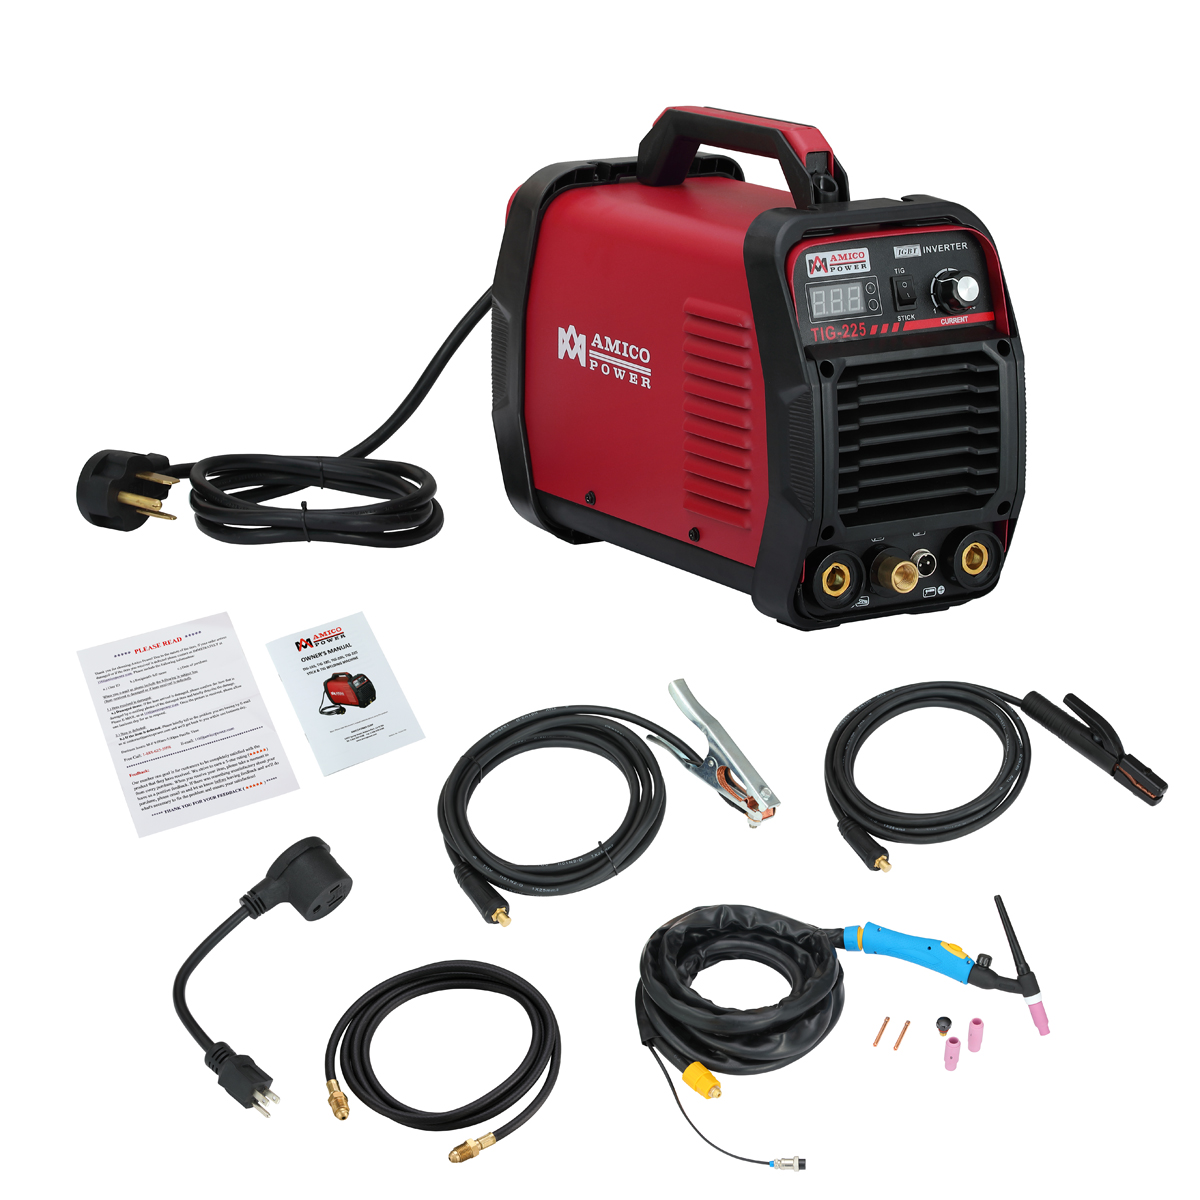 Amico TIG-225 220 Amp HF-TIG Torch Stick Arc Welder 115 & 230V Dual Voltage Welding by Amico Power Corp